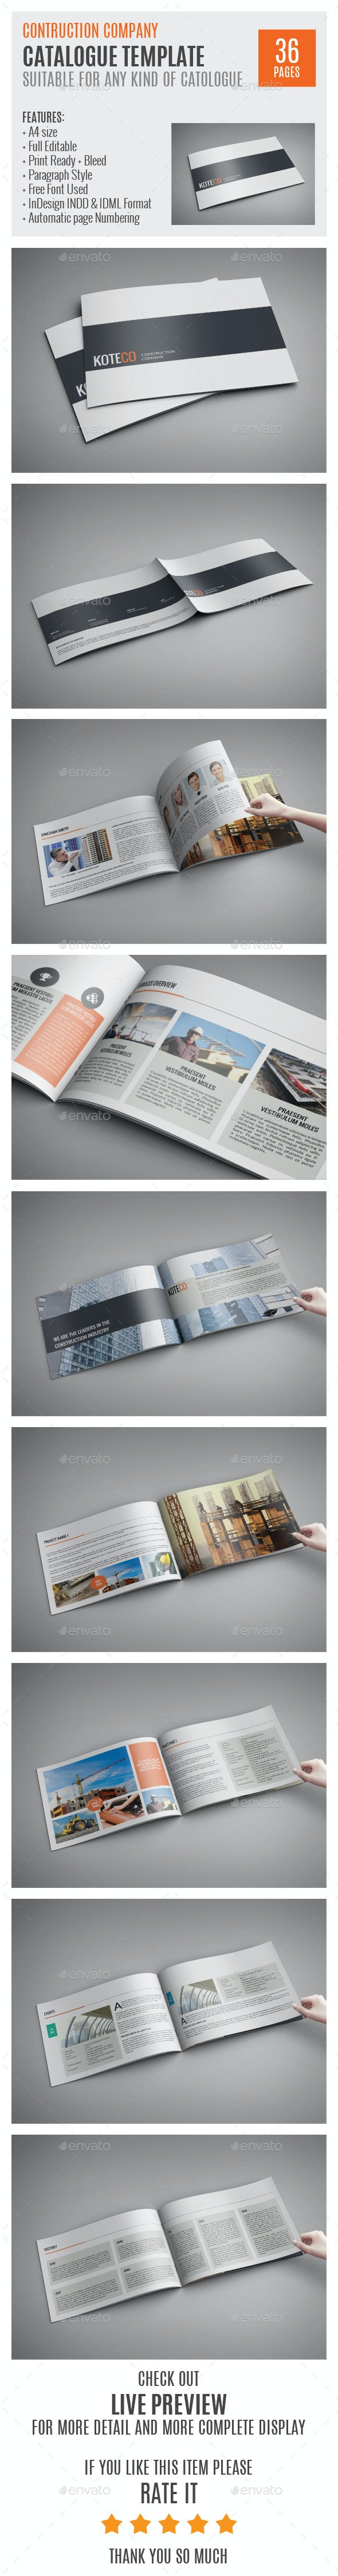 Construction Company A4 Profile Template 0006 - Corporate Brochures